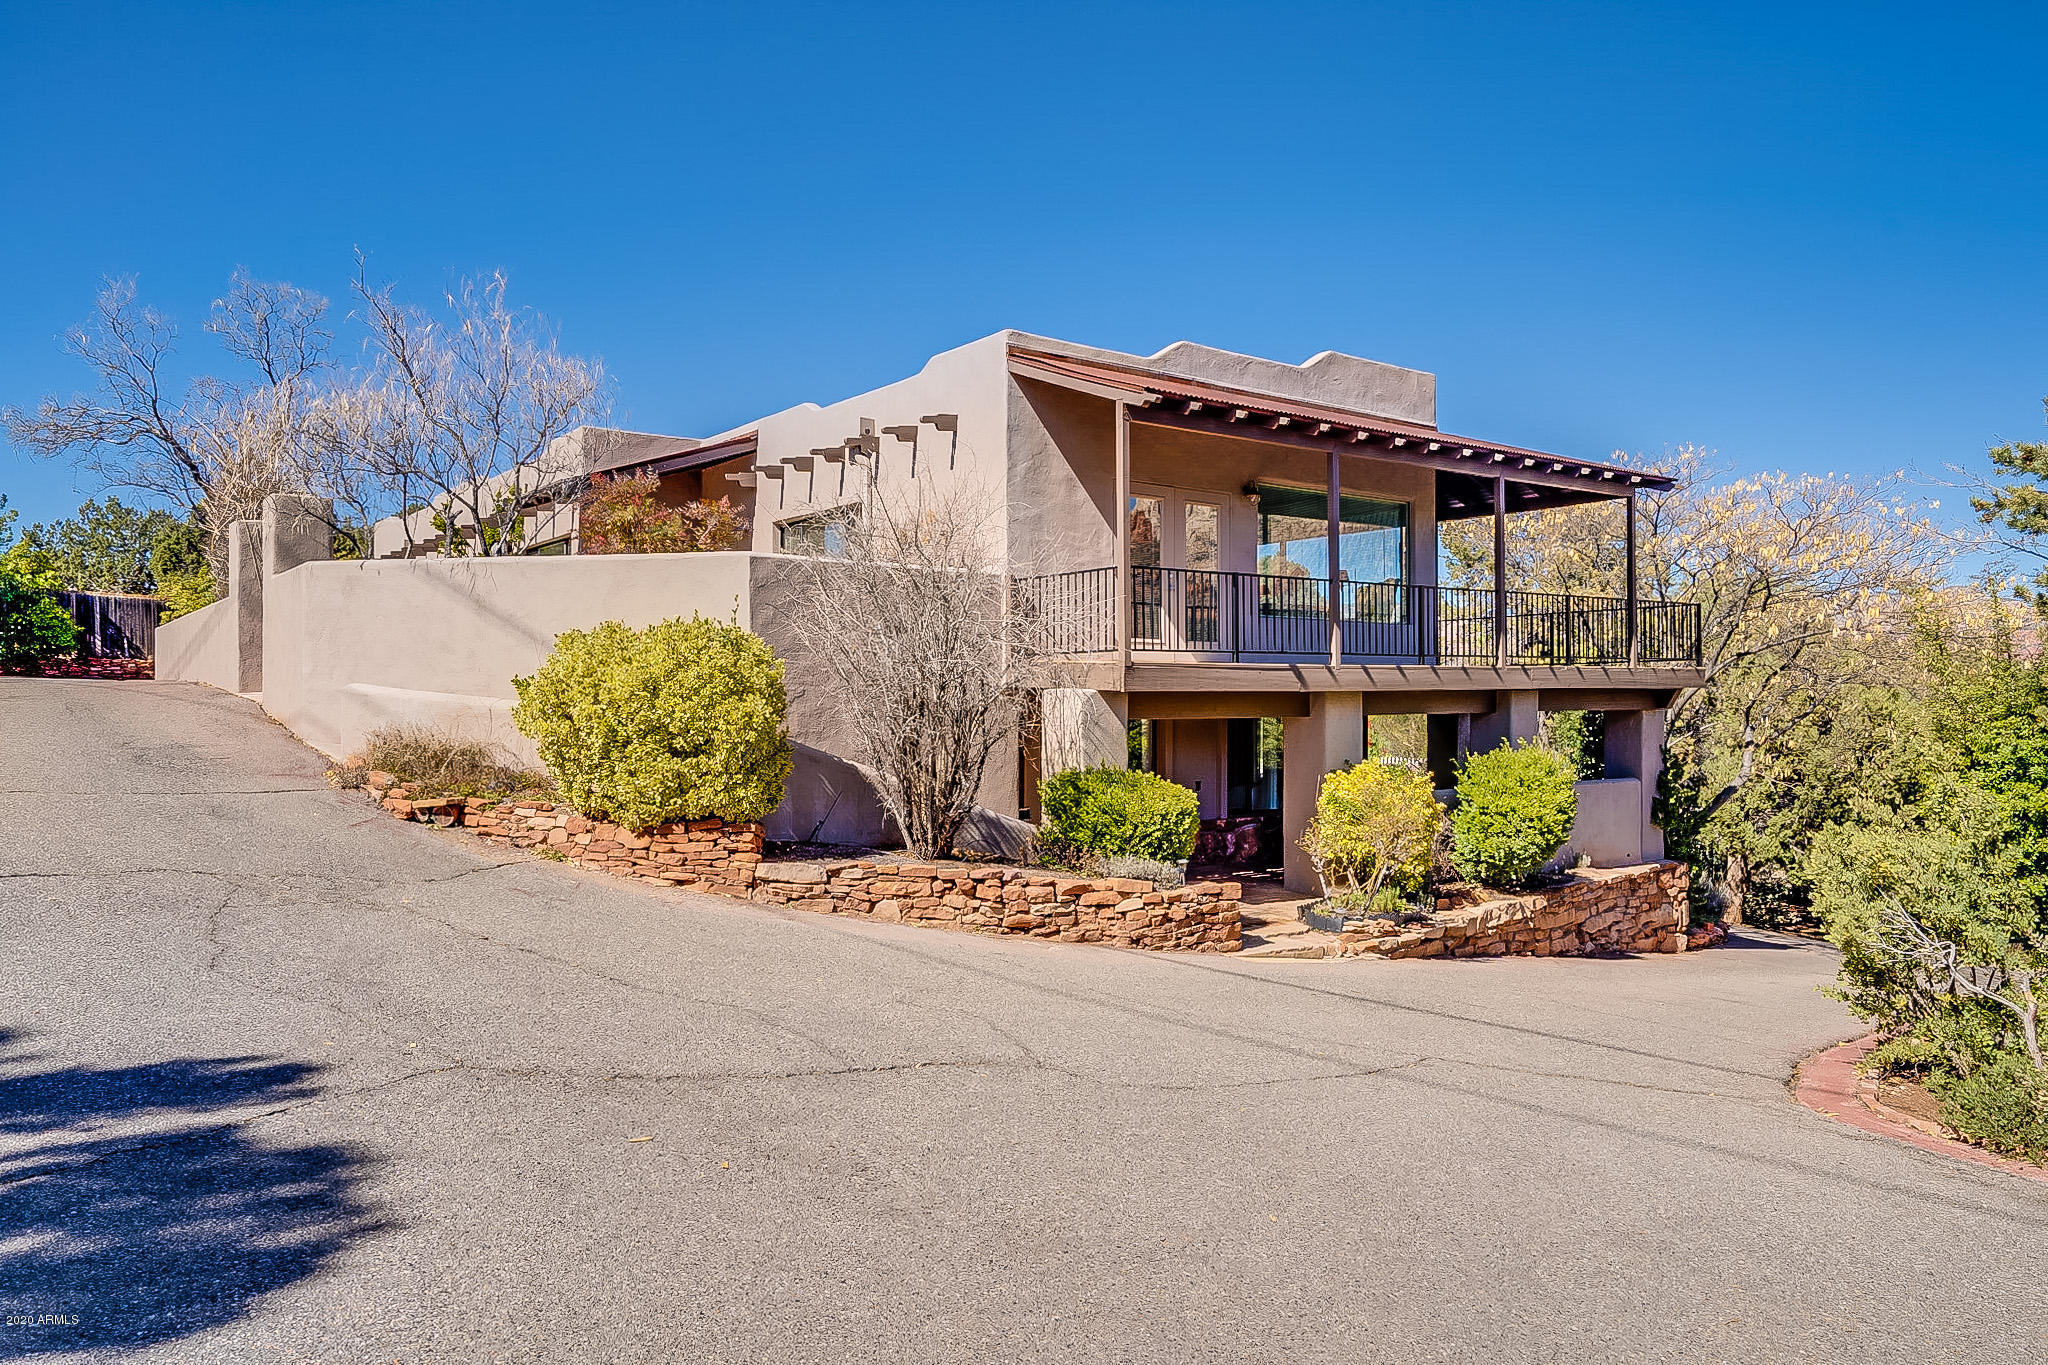 Photo of 95 COLOR COVE Road, Sedona, AZ 86336